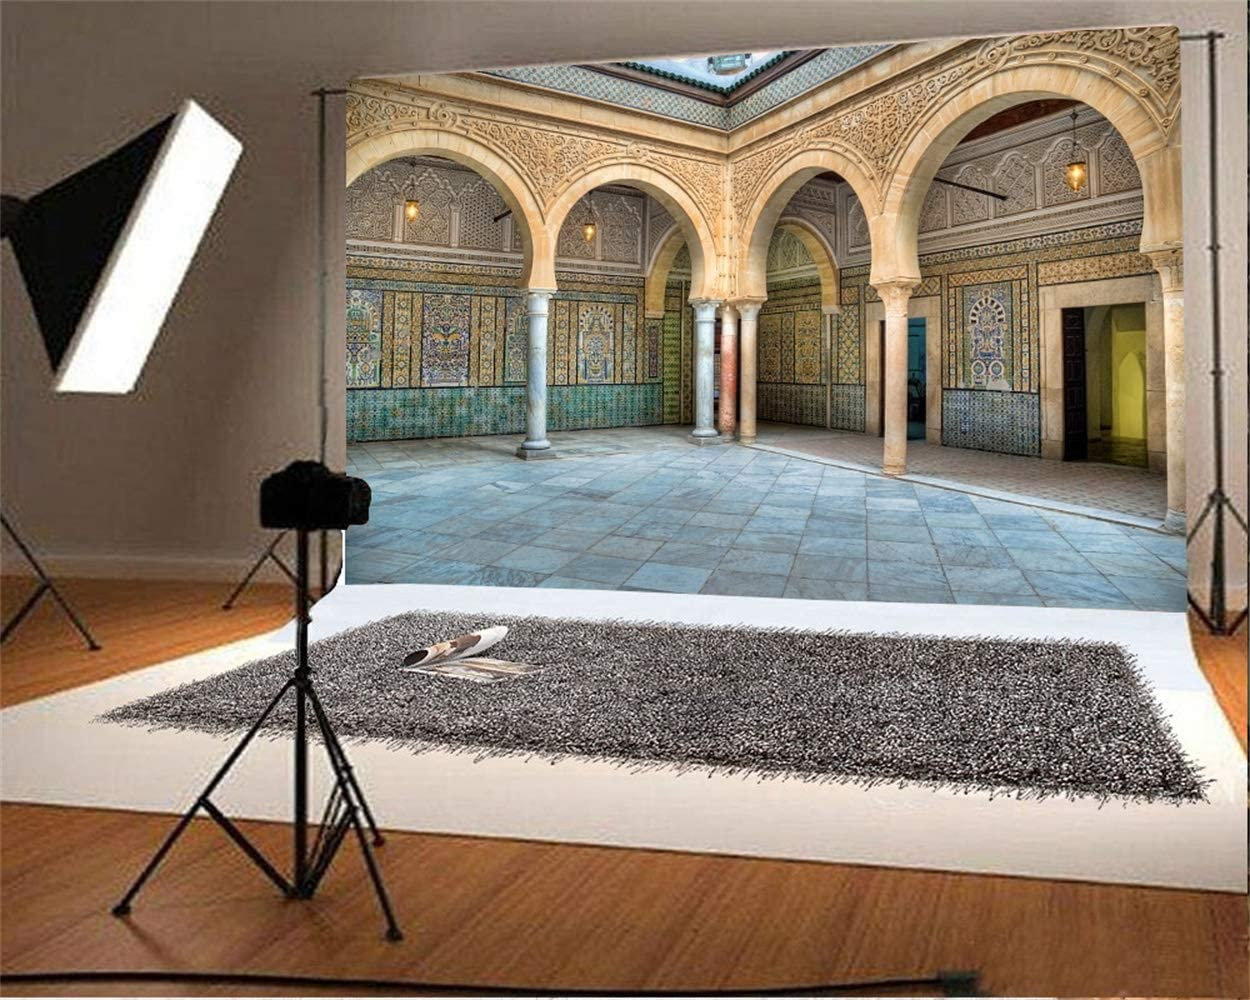 Laeacco 10x8ft Courtyard of Zaouia of Sidi Sahab Vinyl Photography Background Vintage Islam Mosque Scenic Backdrop Arabic Cultural Relics Scenic Spot Historical Architecture Studio Props